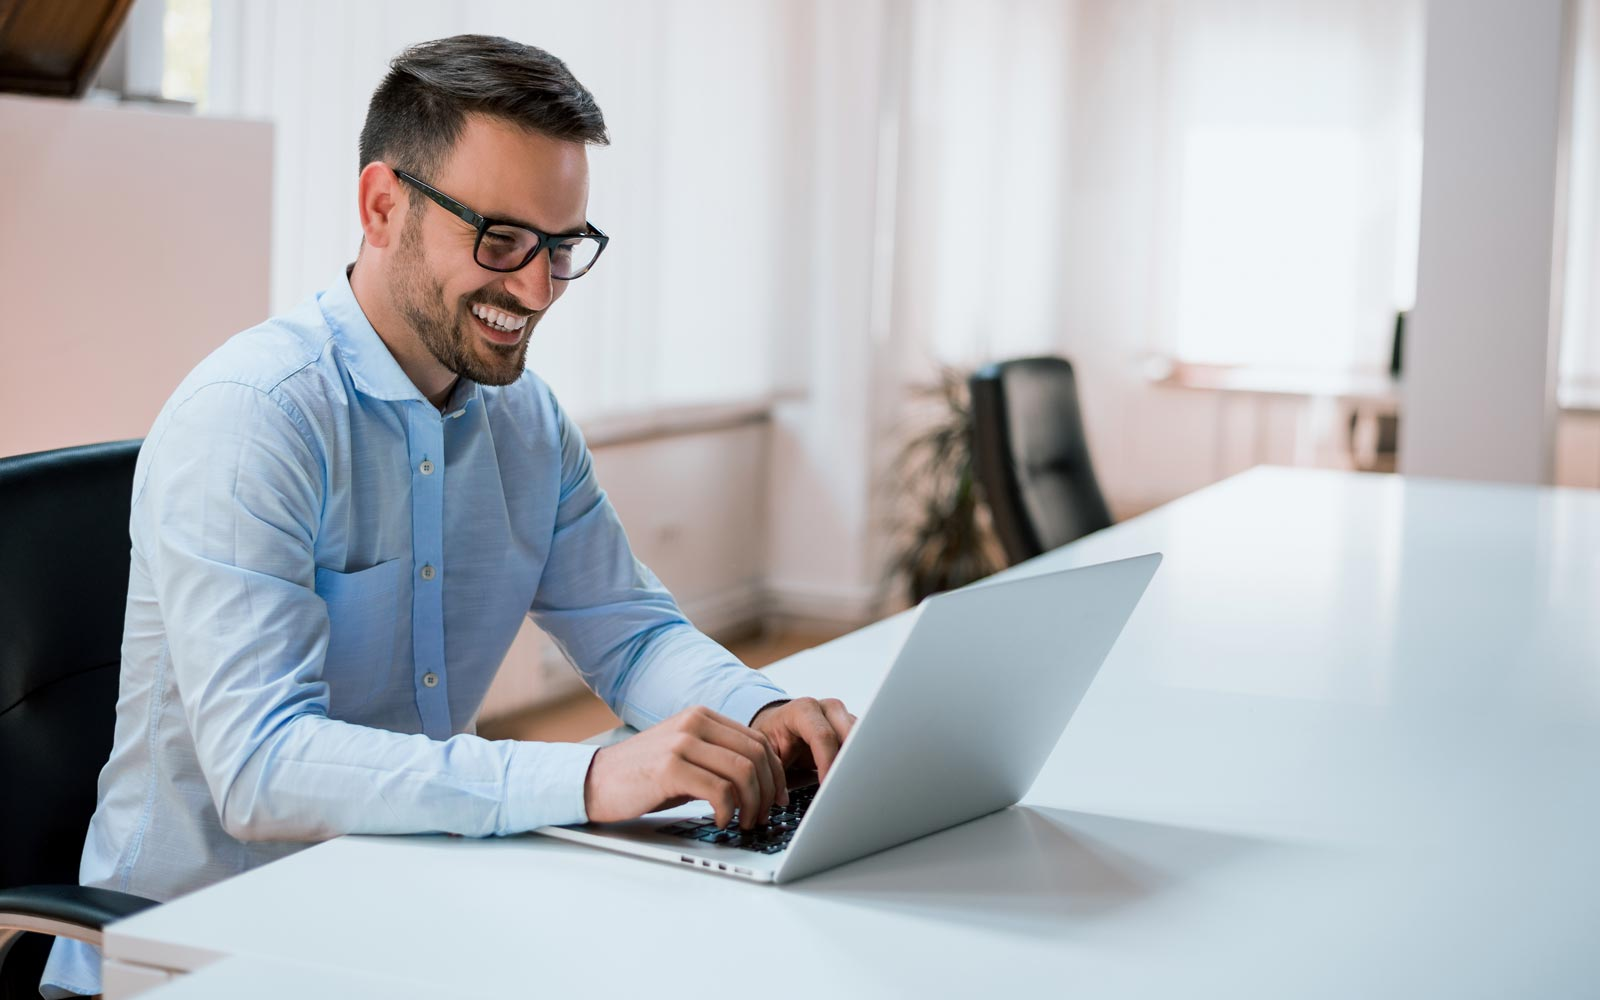 Facility manager working on his laptop